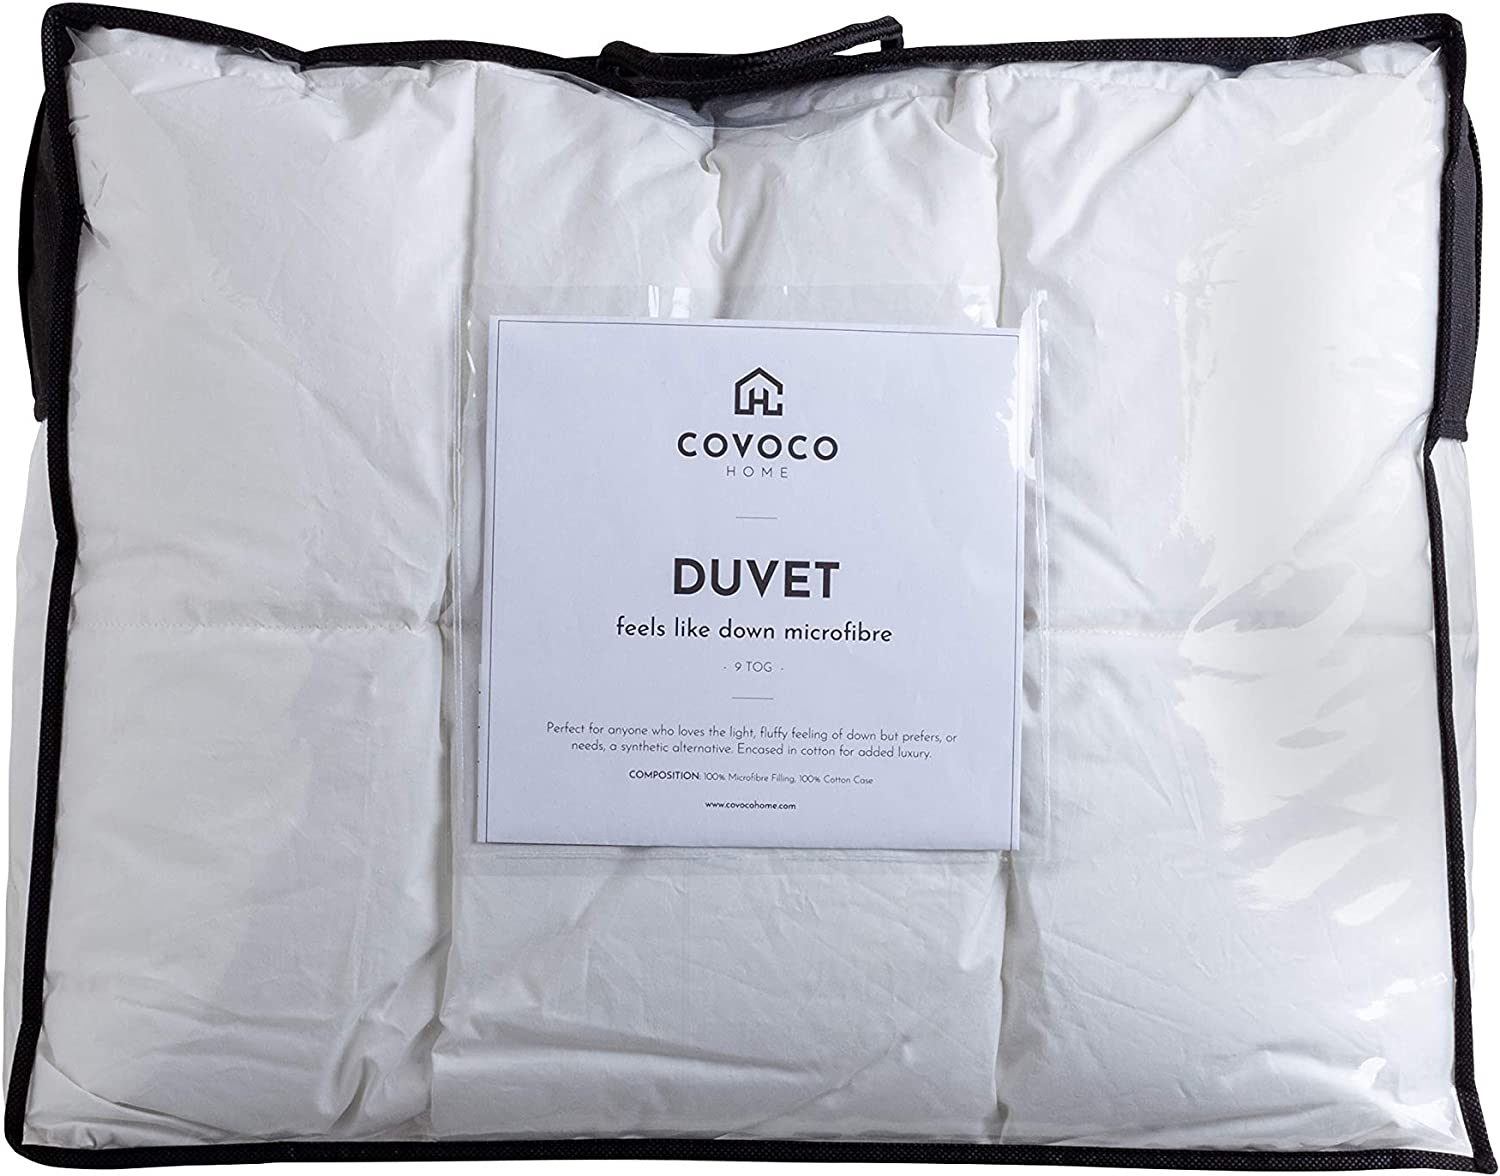 Luxueux microfibre 13.5 Tog Feels Like Down Couette